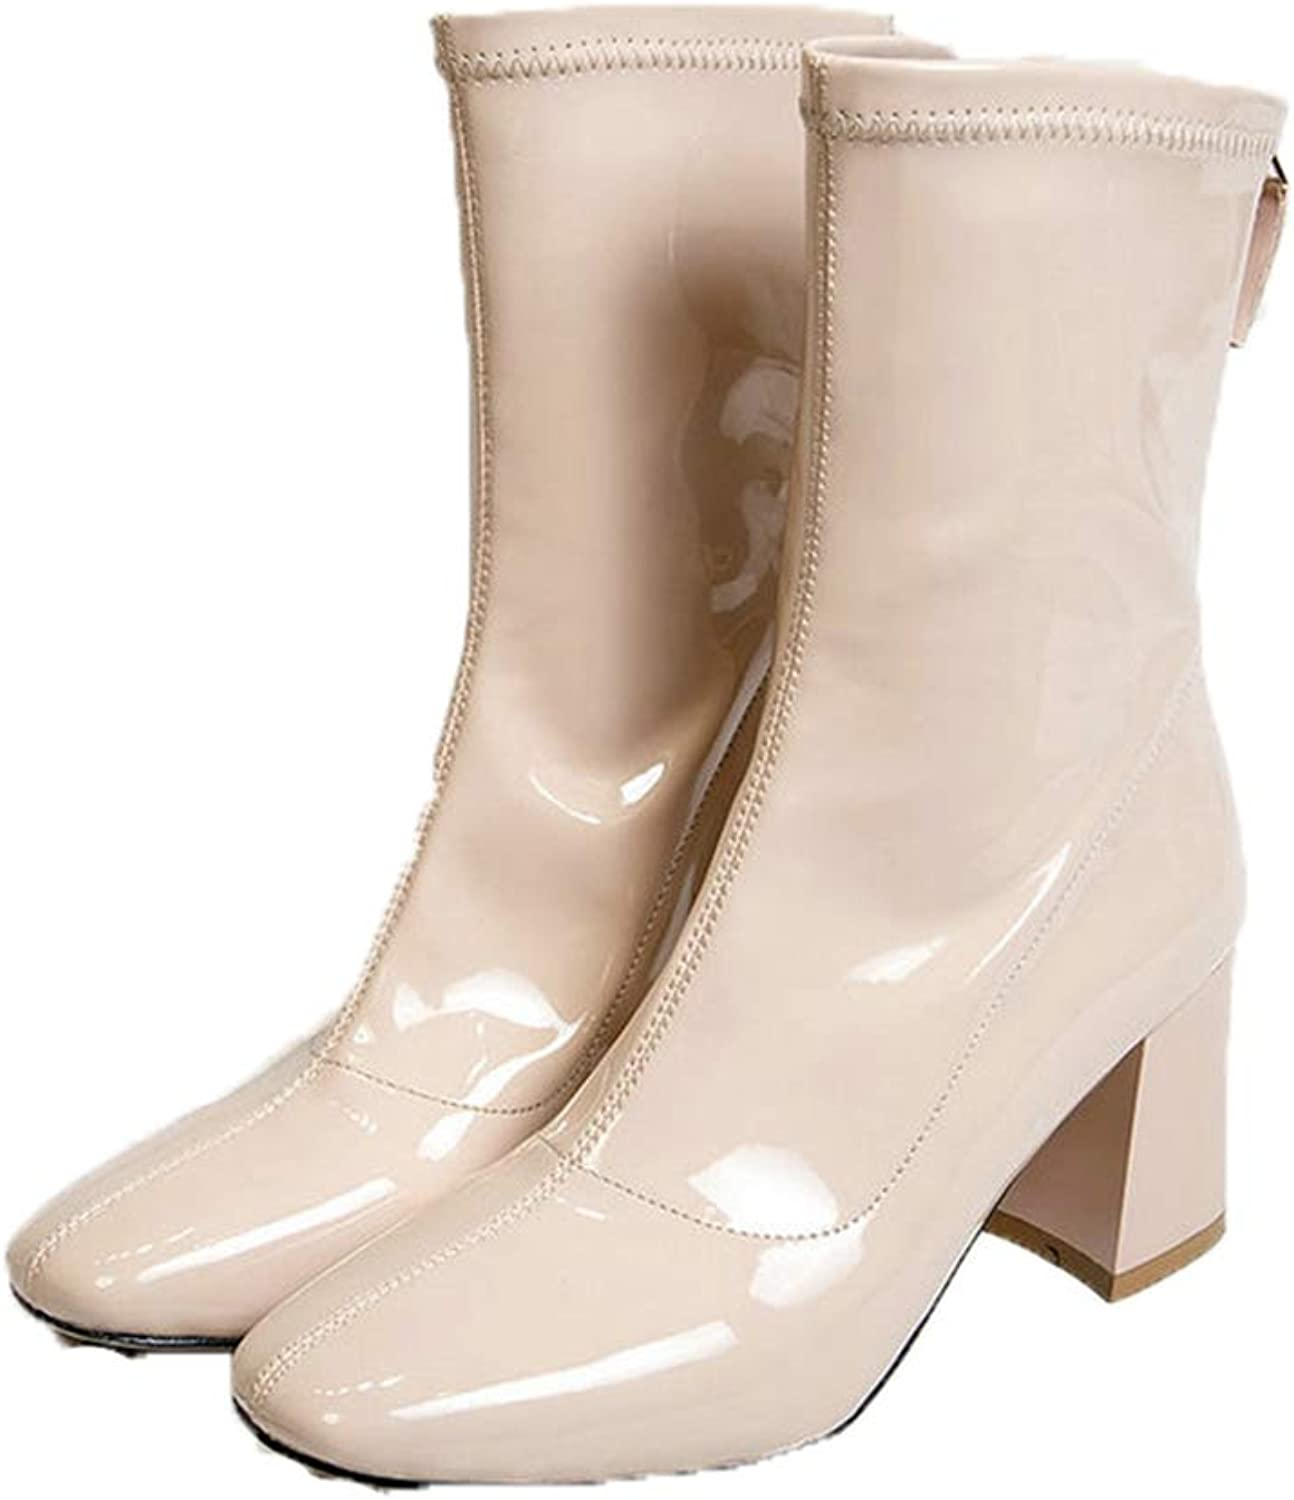 Jim Hugh Women Fashion Mid Calf Boots Rear Zipper Thick Square High Heel Spring Waterproof Fall Boots